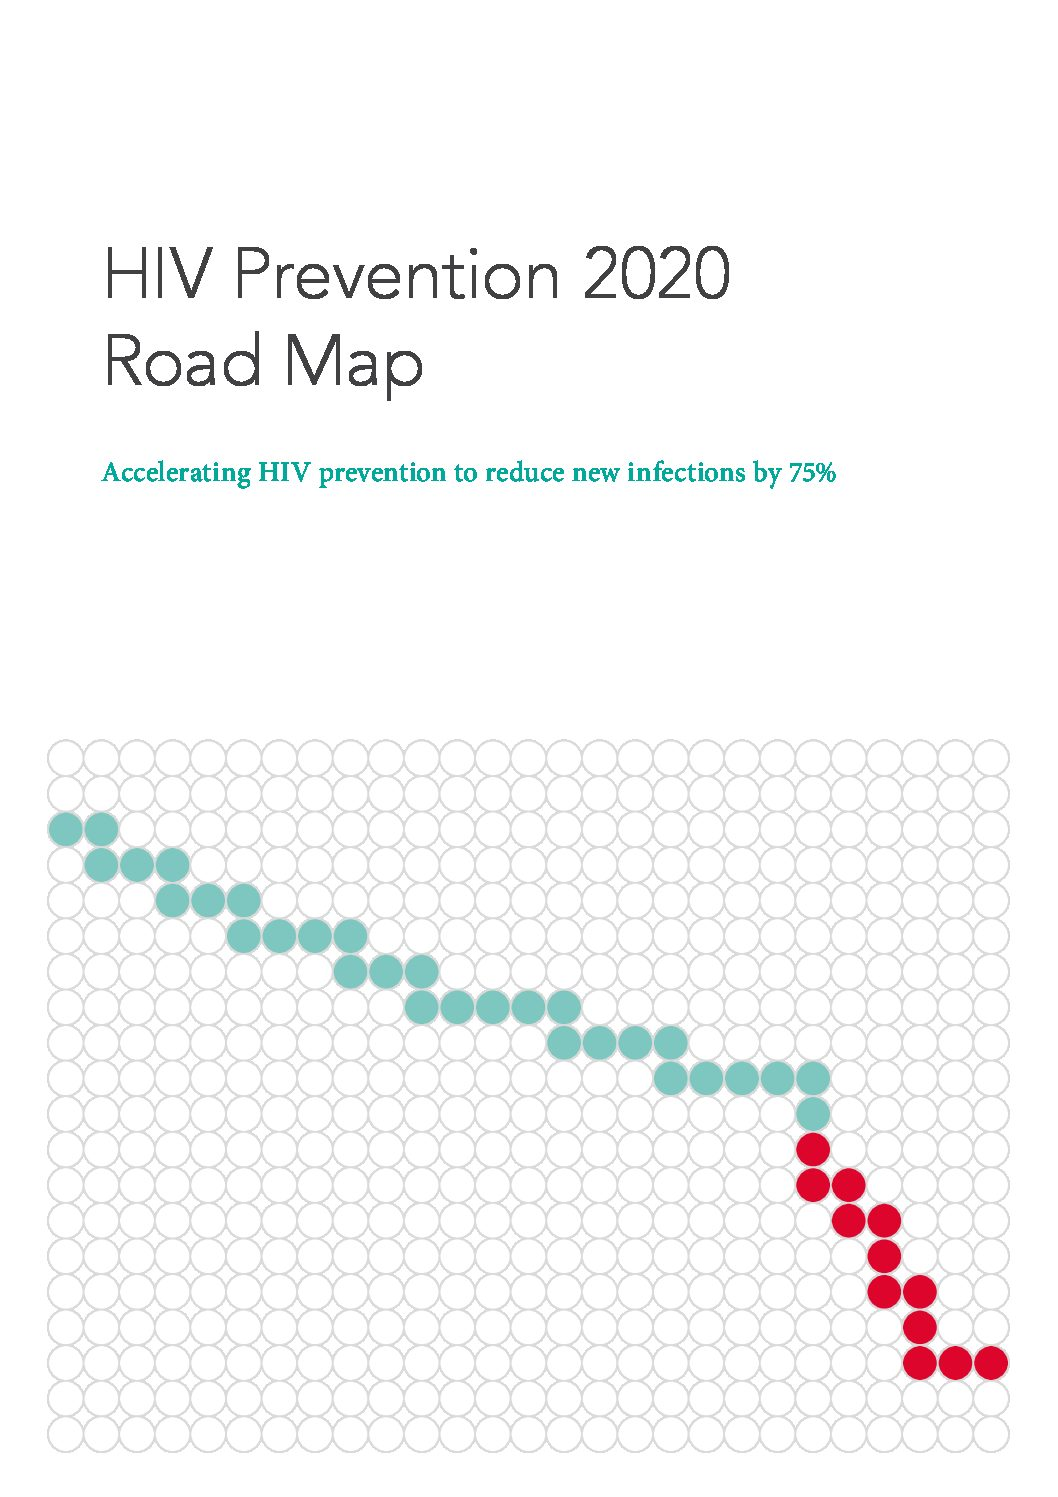 HIV Prevention 2020 Road Map